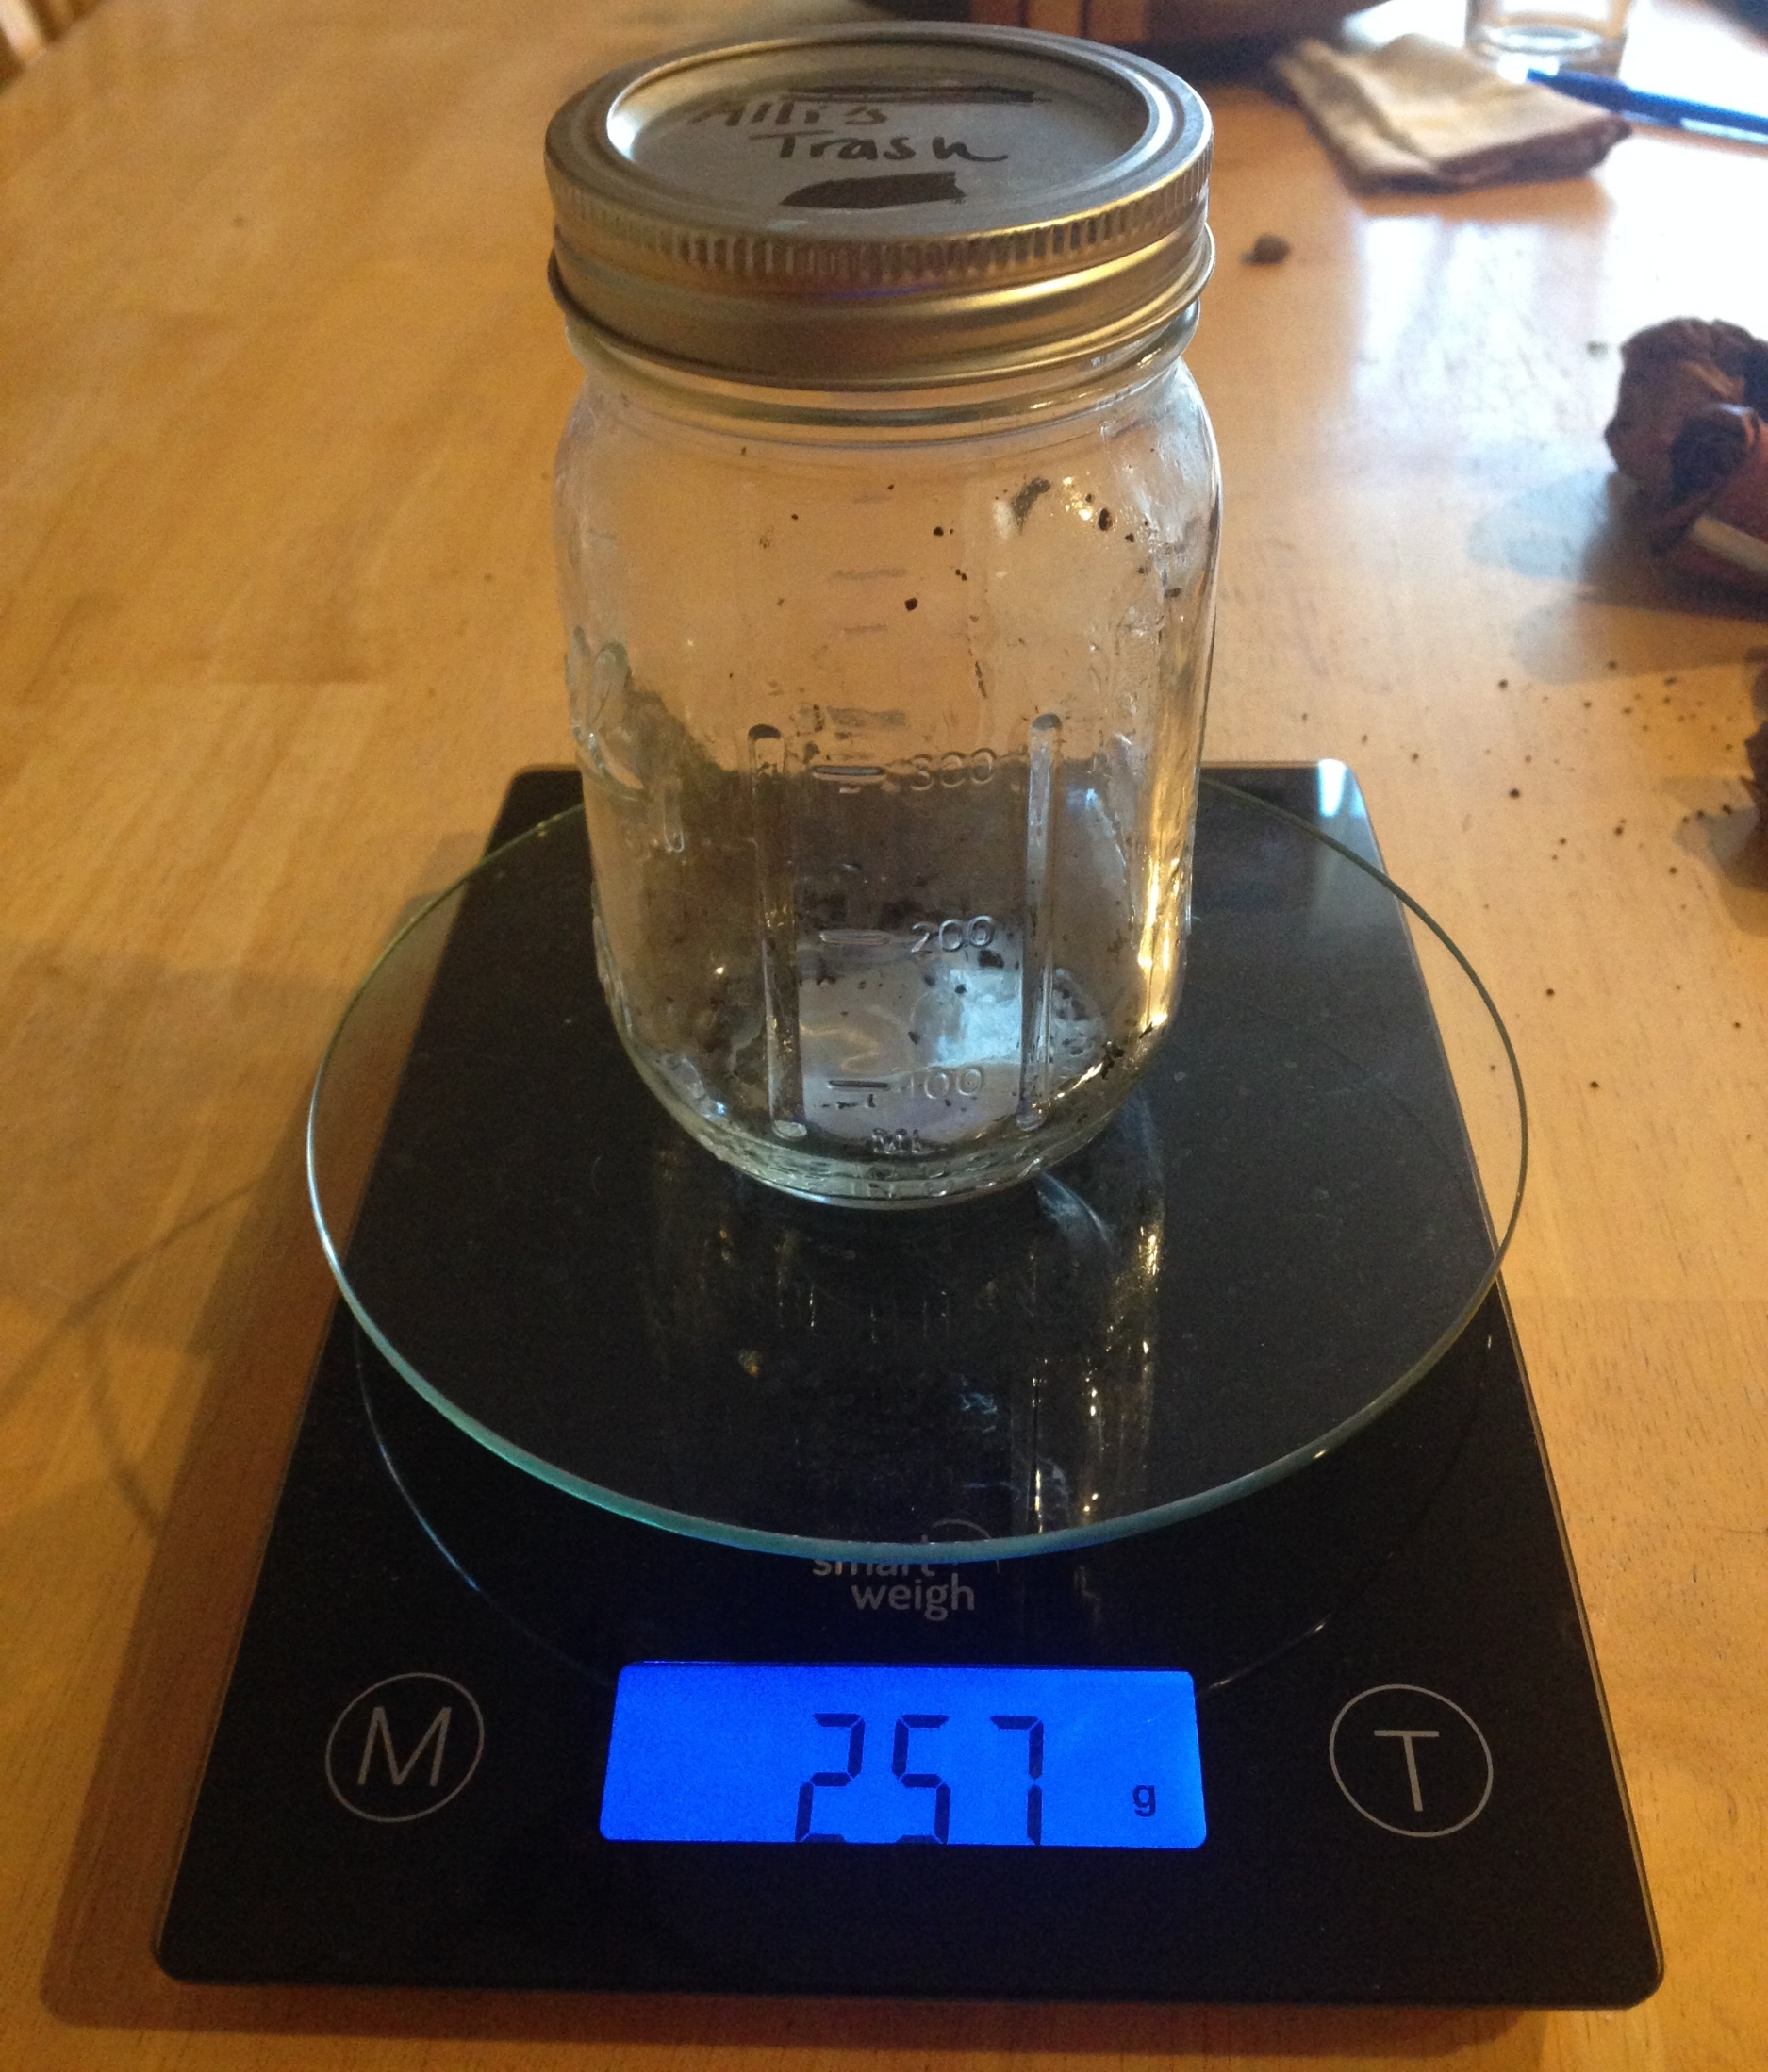 Empty mason jar weighing 257g